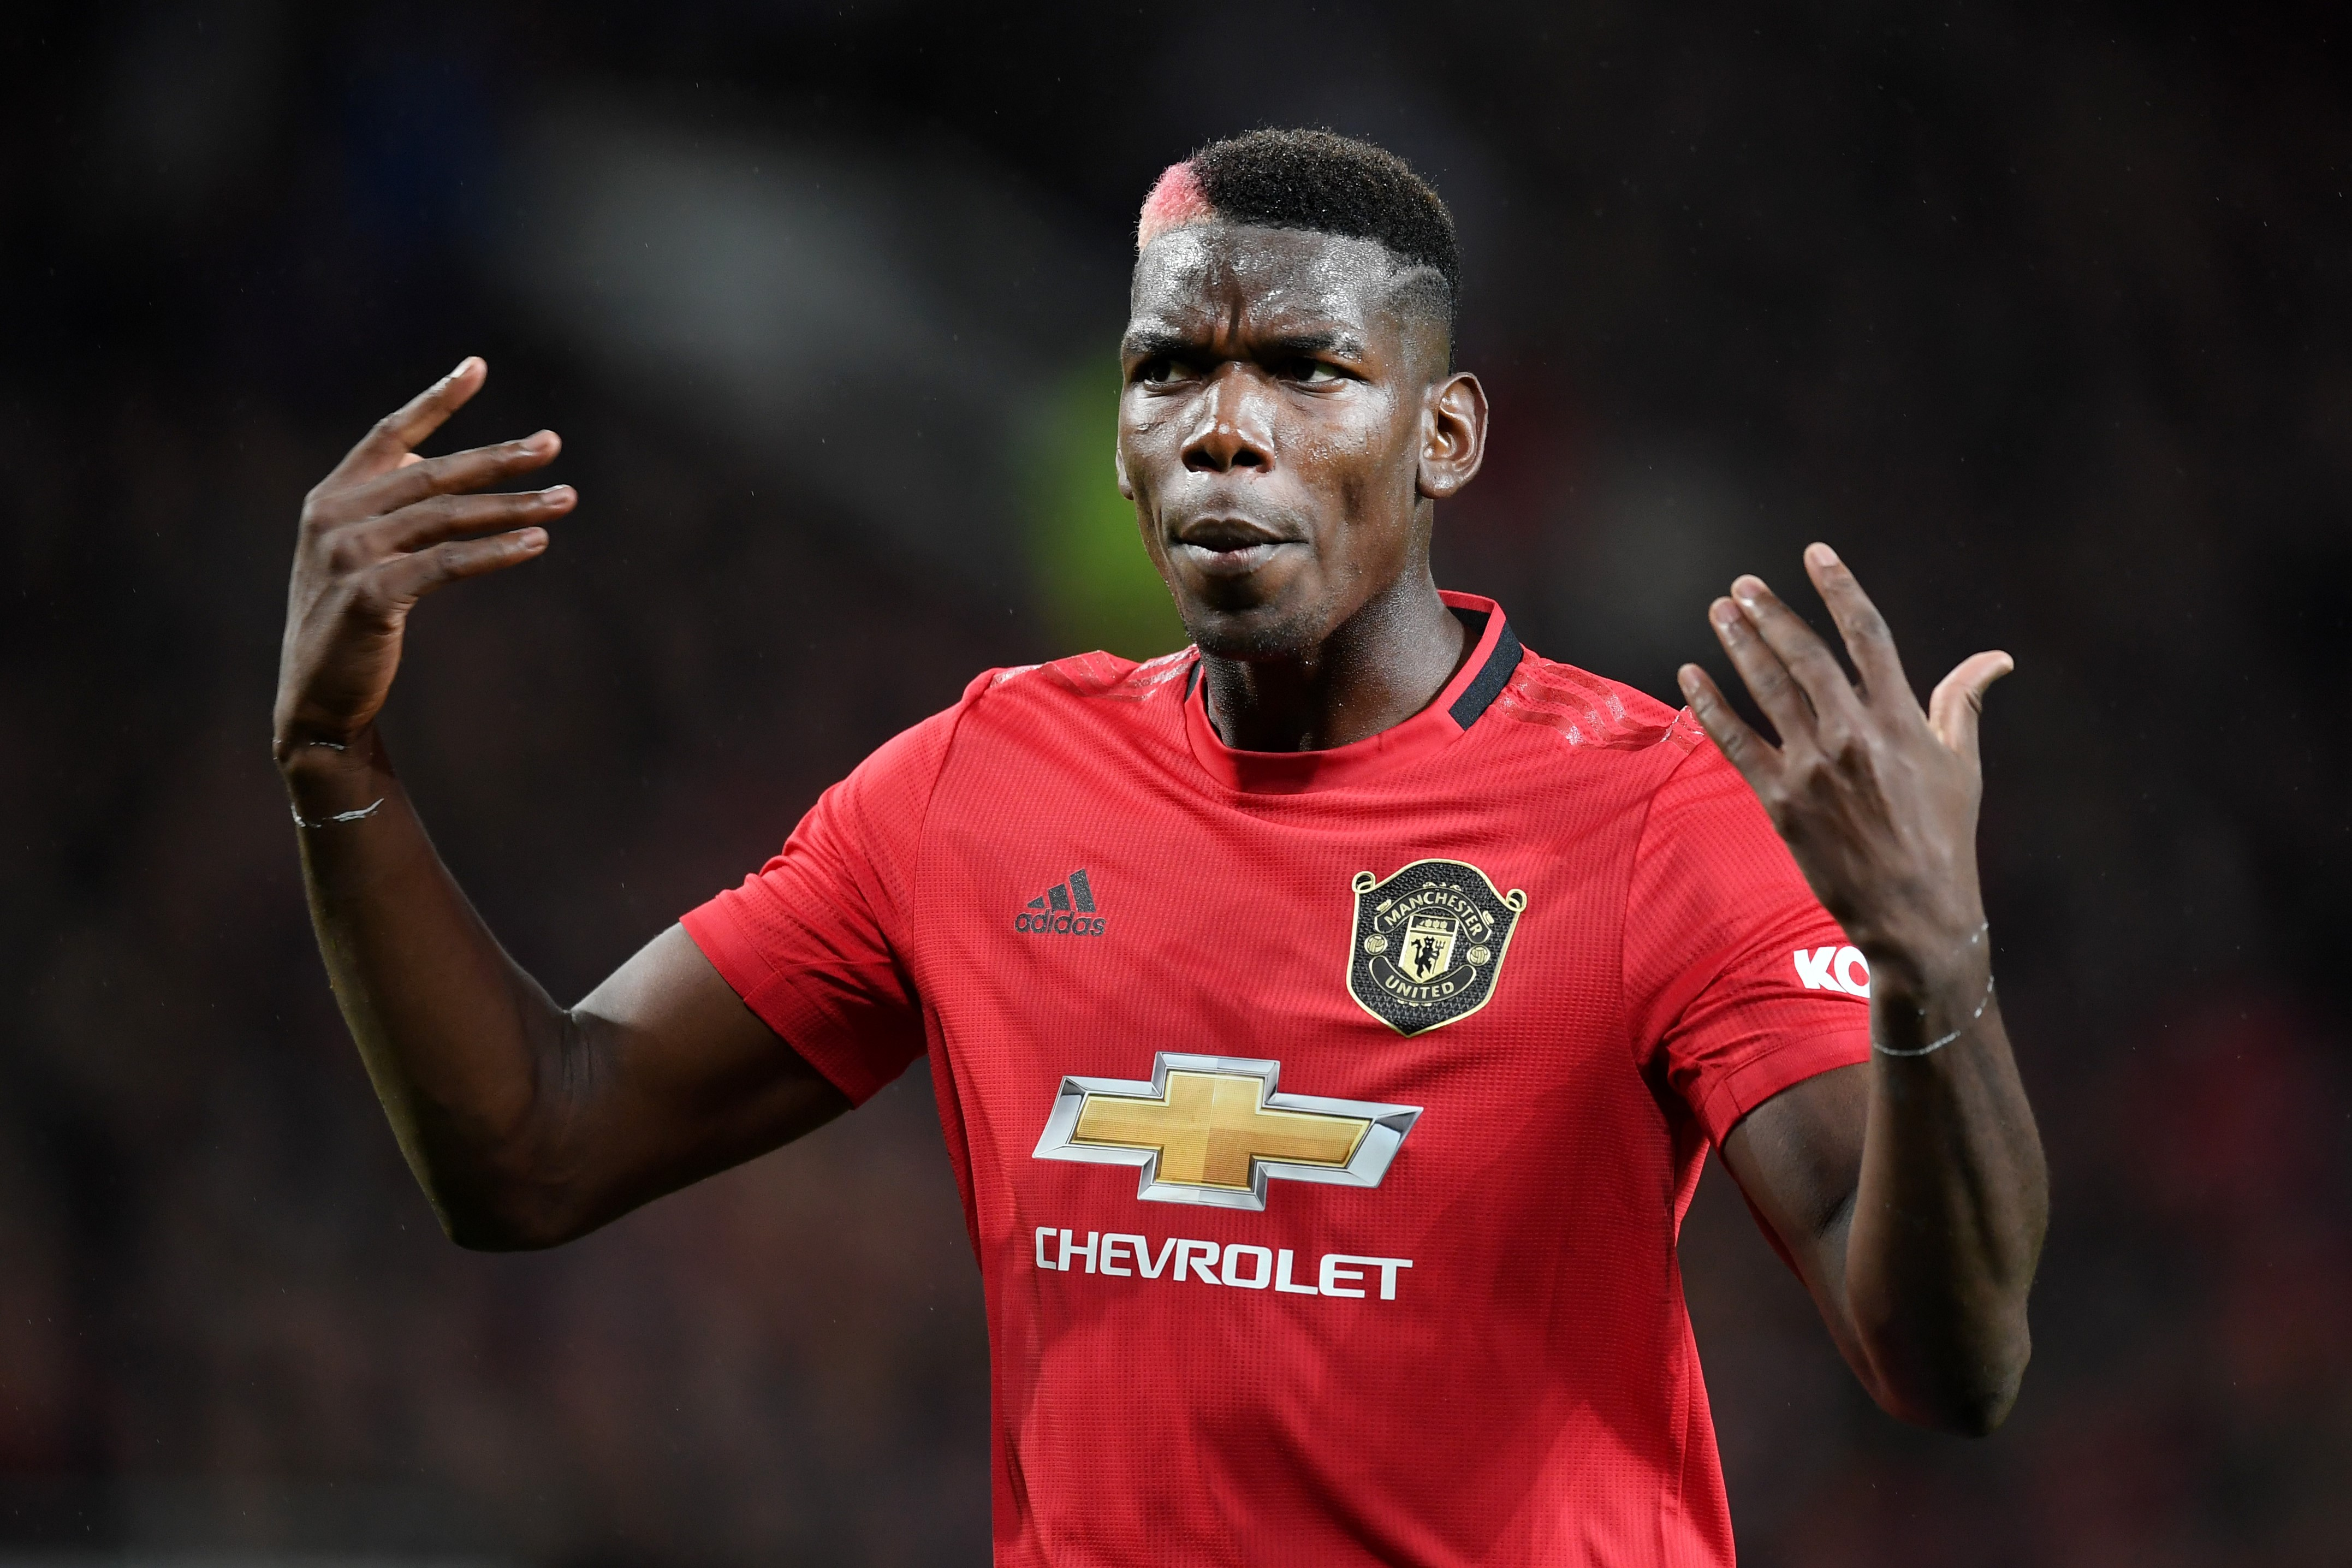 Paul Pogba of Manchester United reacts during the Premier League match between Manchester United and Arsenal FC at Old Trafford on September 30, 2019